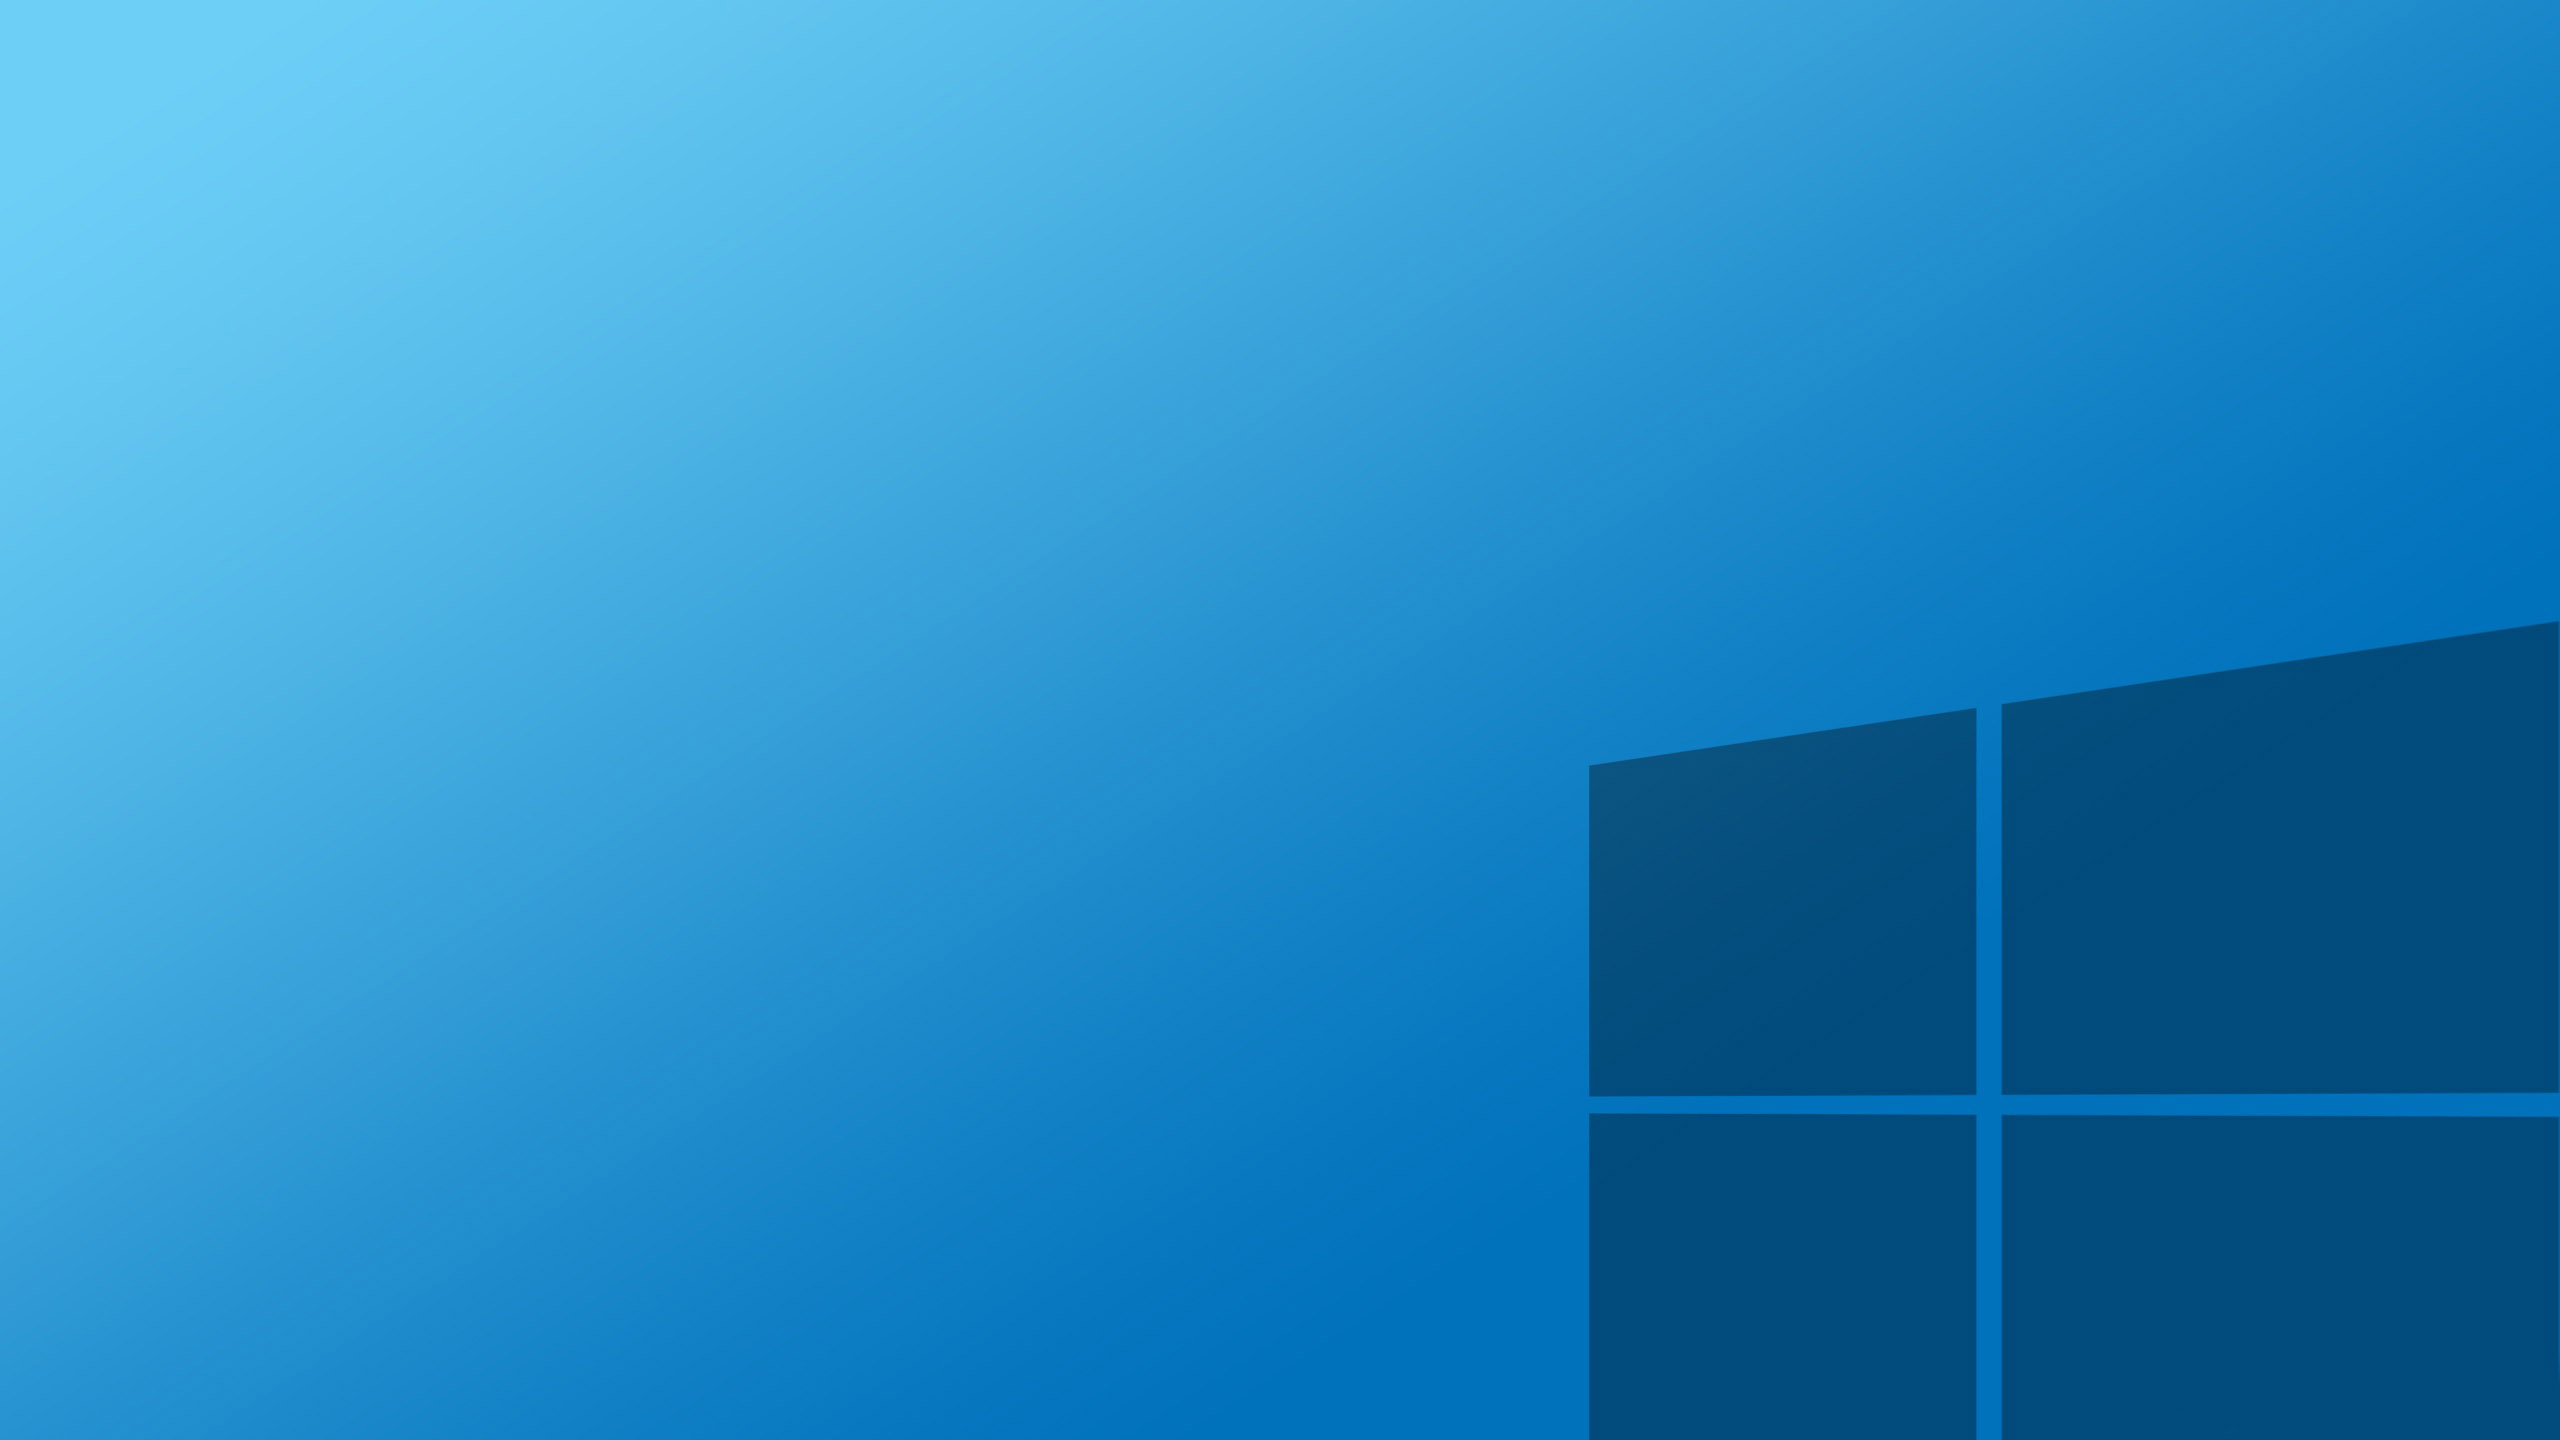 Windows 10 Hd Wallpaper Wallpapersafari